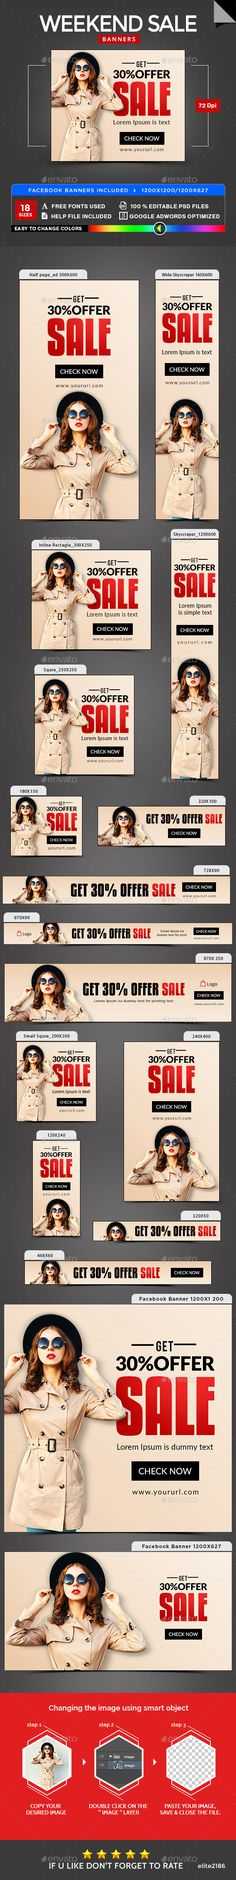 Weekend Sale Banners - #Banners & Ads #Web Elements Download here: https://graphicriver.net/item/weekend-sale-banners/19700055?ref=alena994